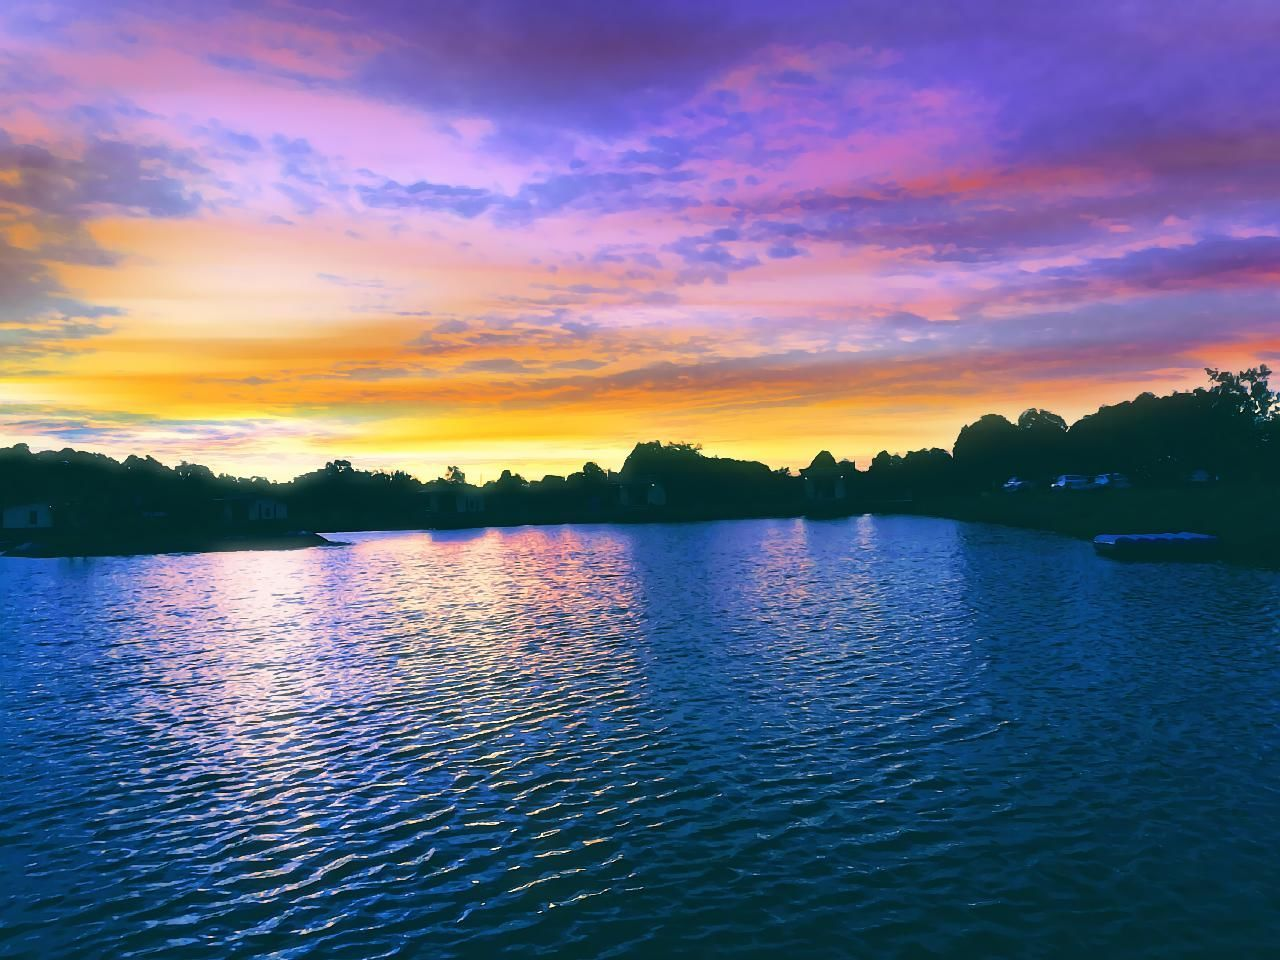 sunset, beauty in nature, scenics, water, tranquil scene, nature, tranquility, sky, lake, idyllic, no people, waterfront, cloud - sky, outdoors, silhouette, rippled, tree, view into land, day